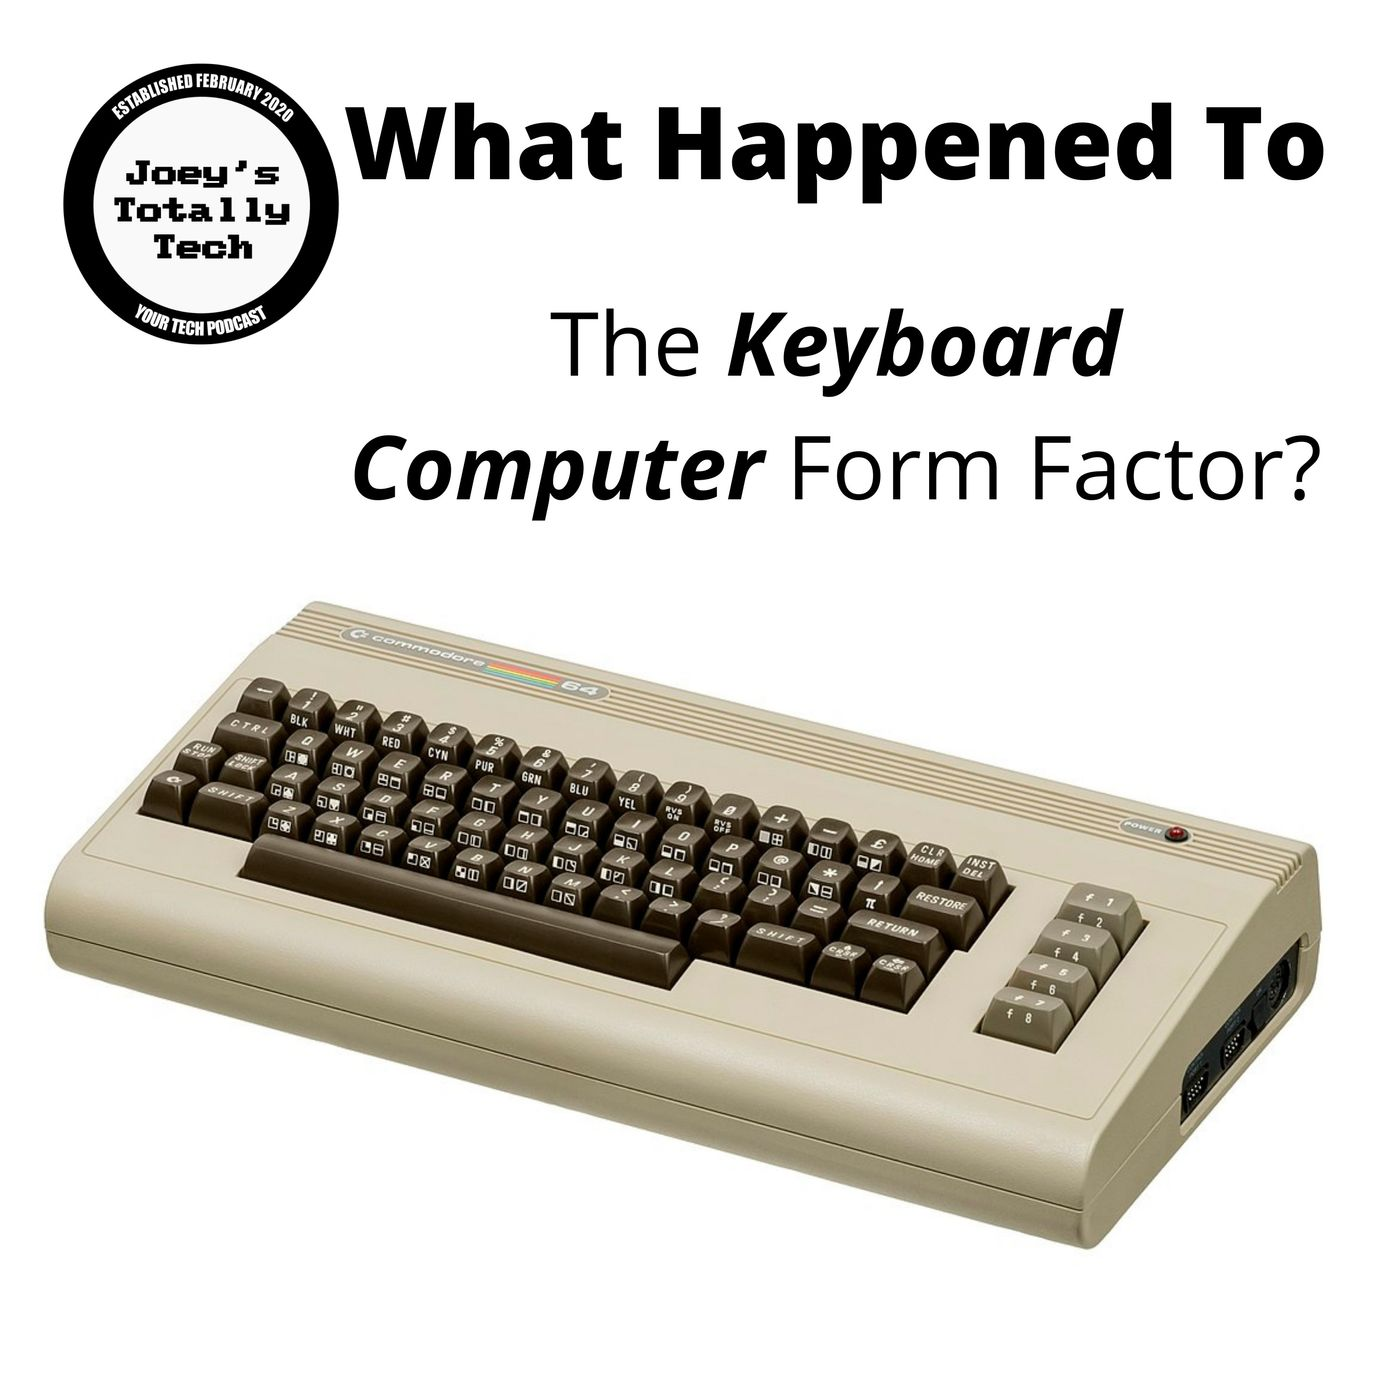 What Happened To: The Keyboard Computer Form Factor